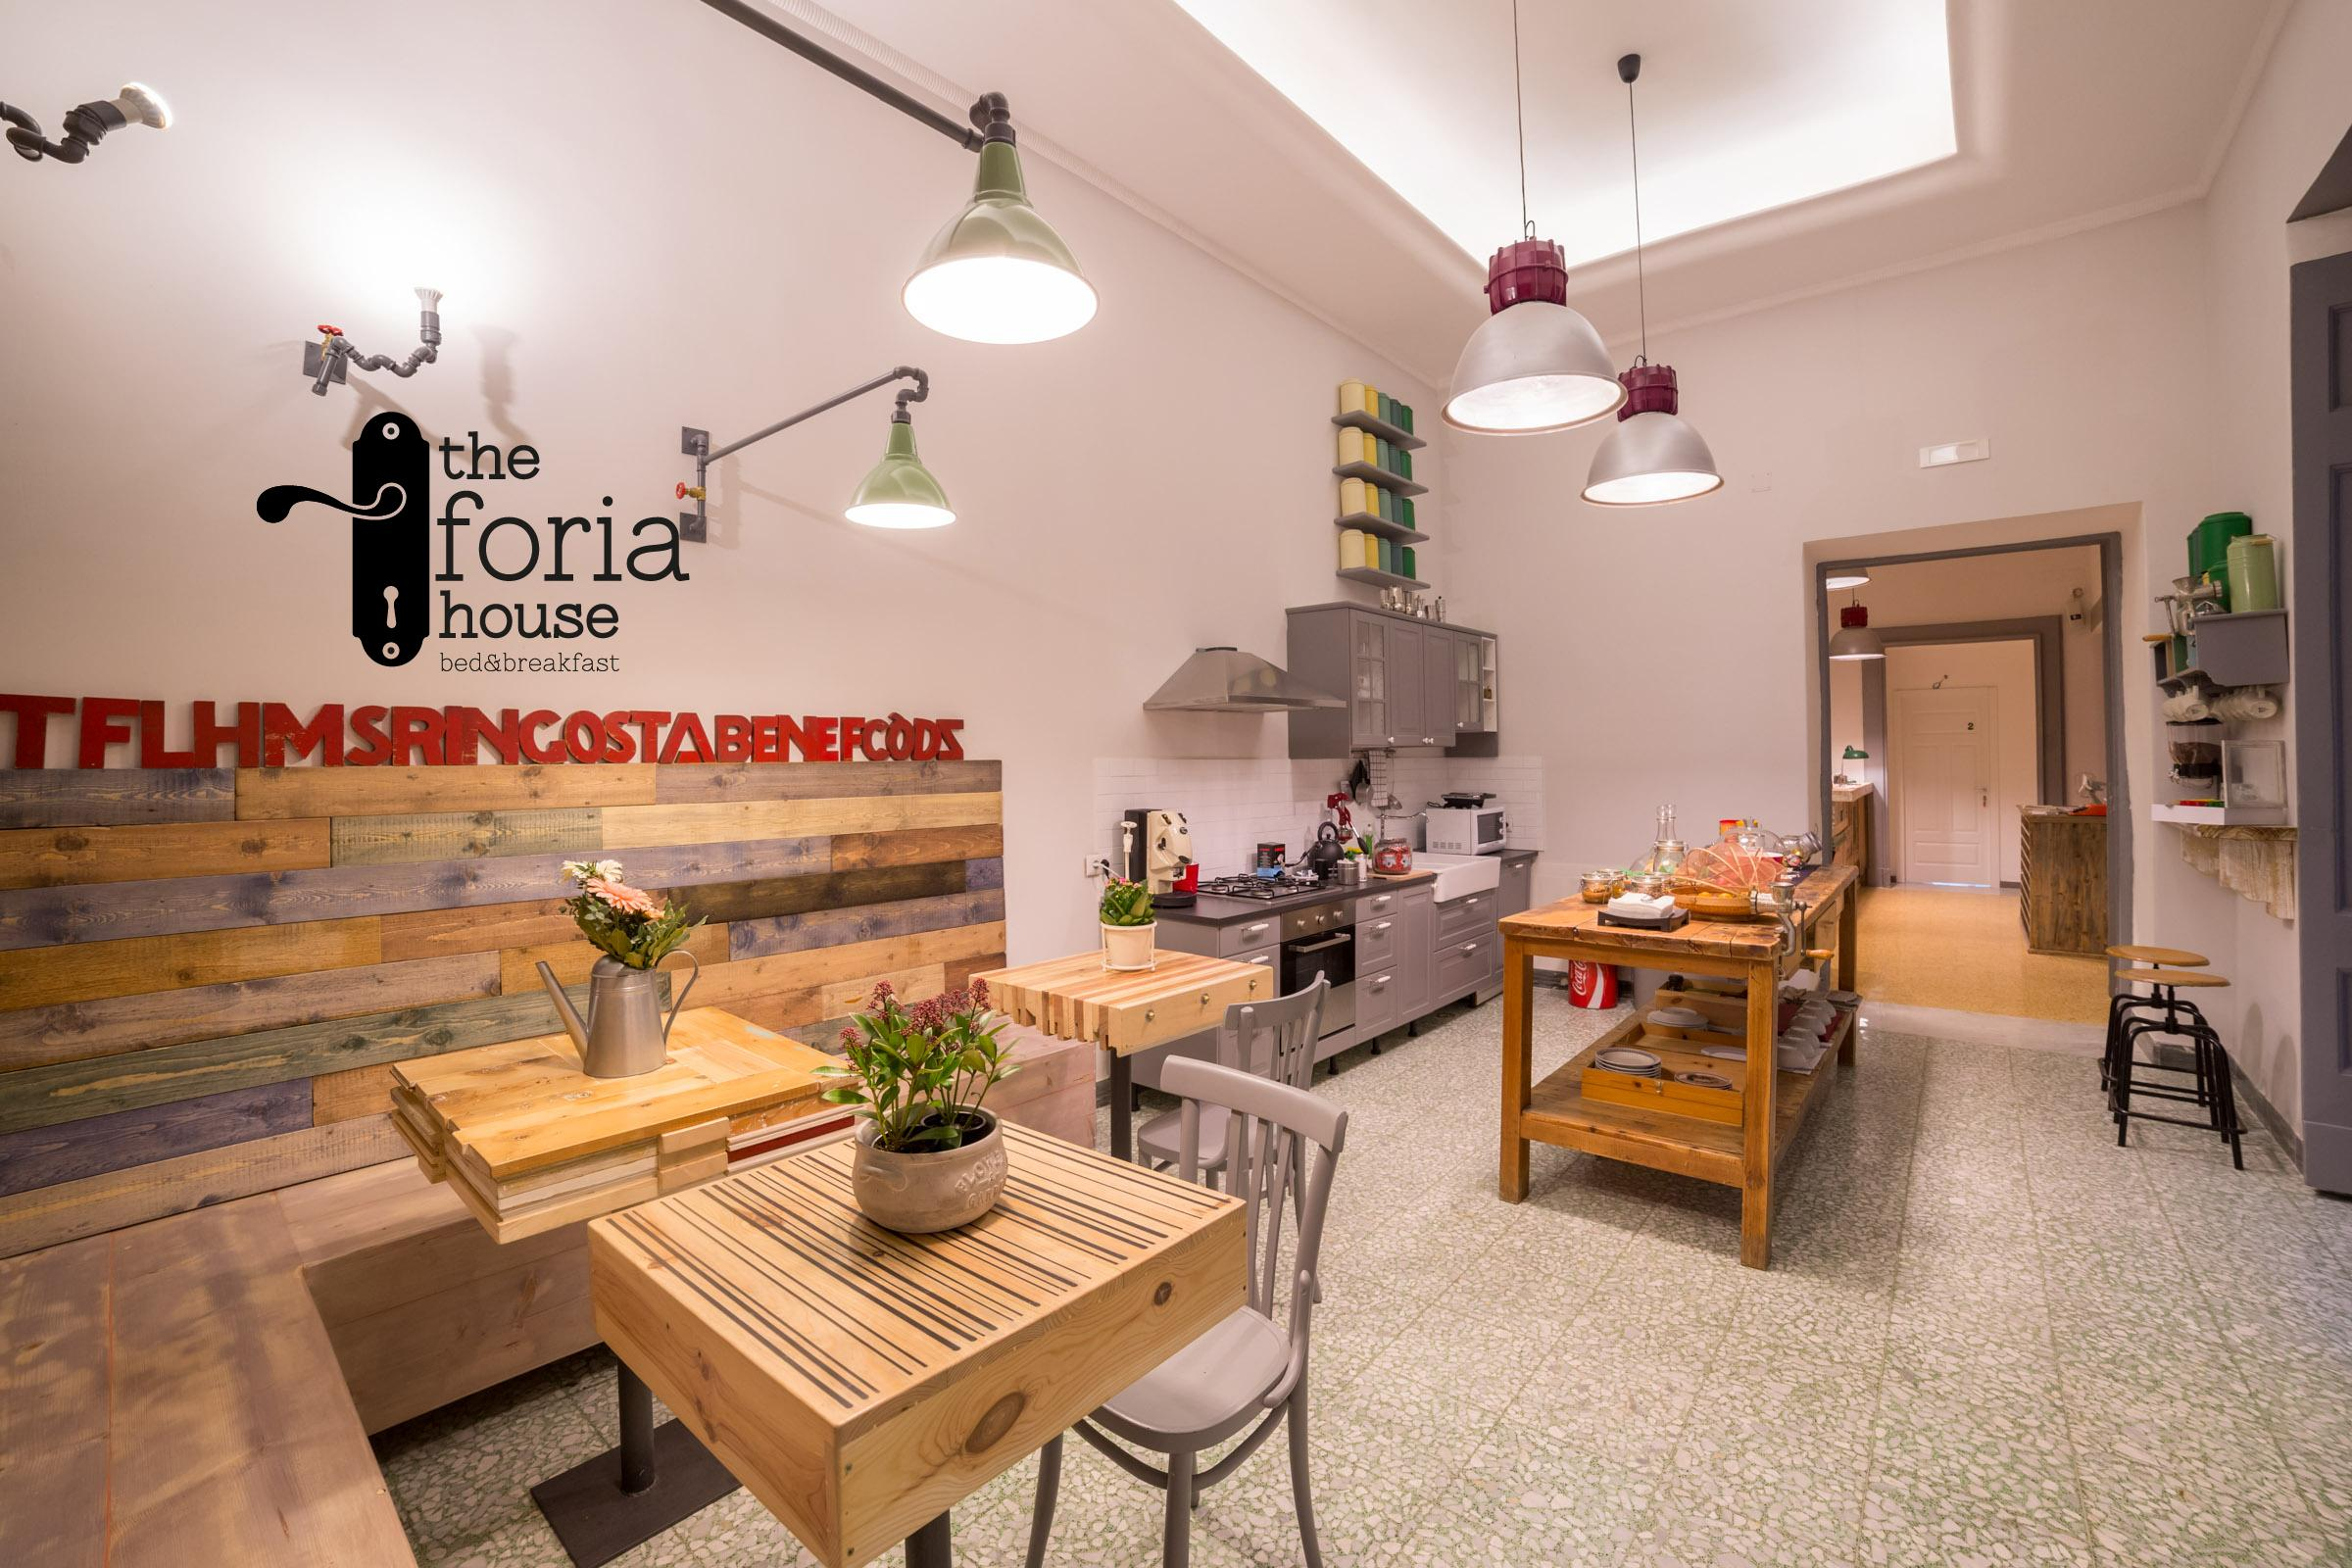 The Foria House Bed & Breakfast